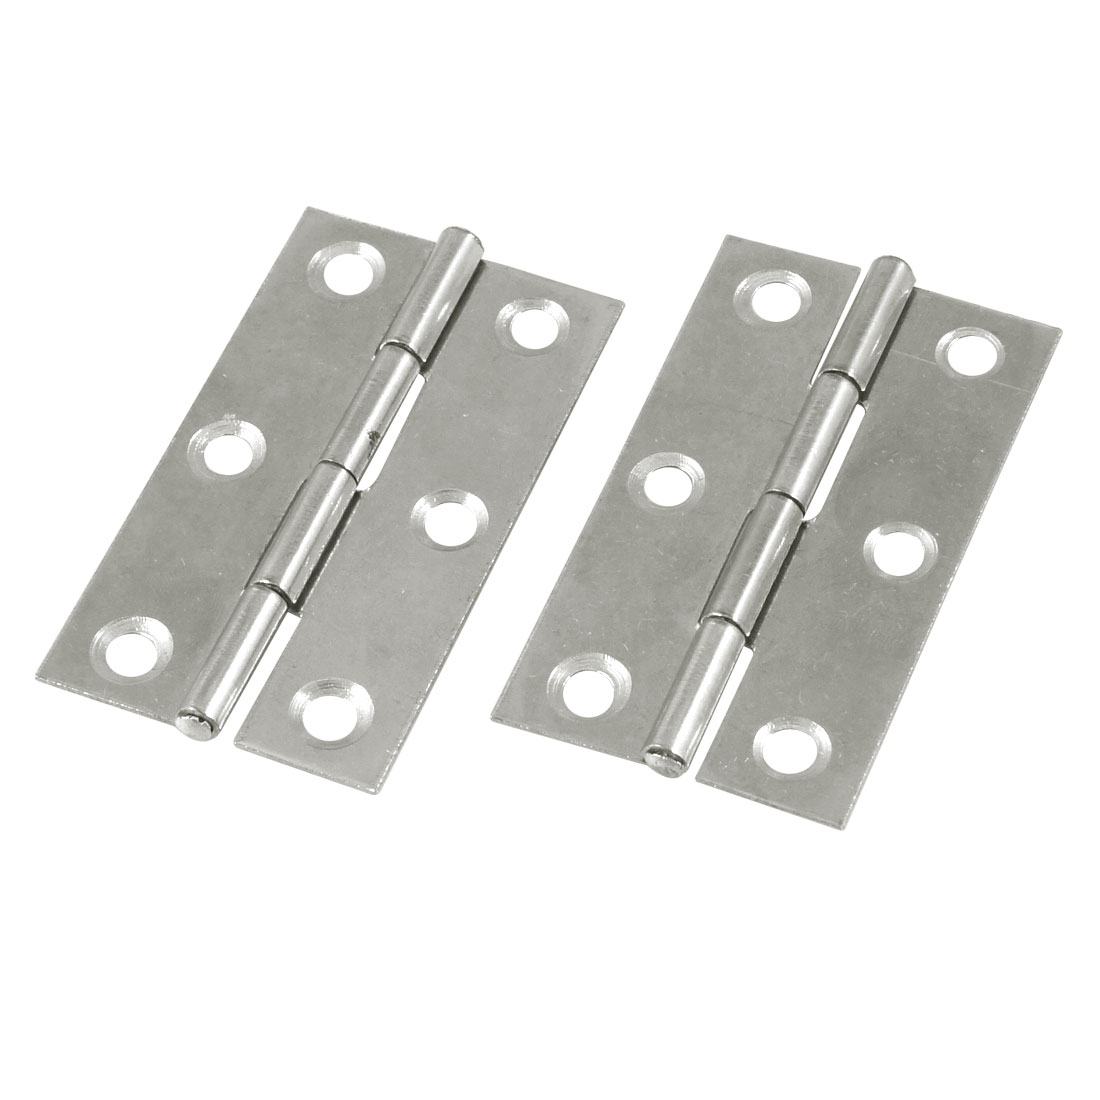 "2 Pcs Cabinet Drawer Door Stainless Steel Hinges 2.2"" Long"